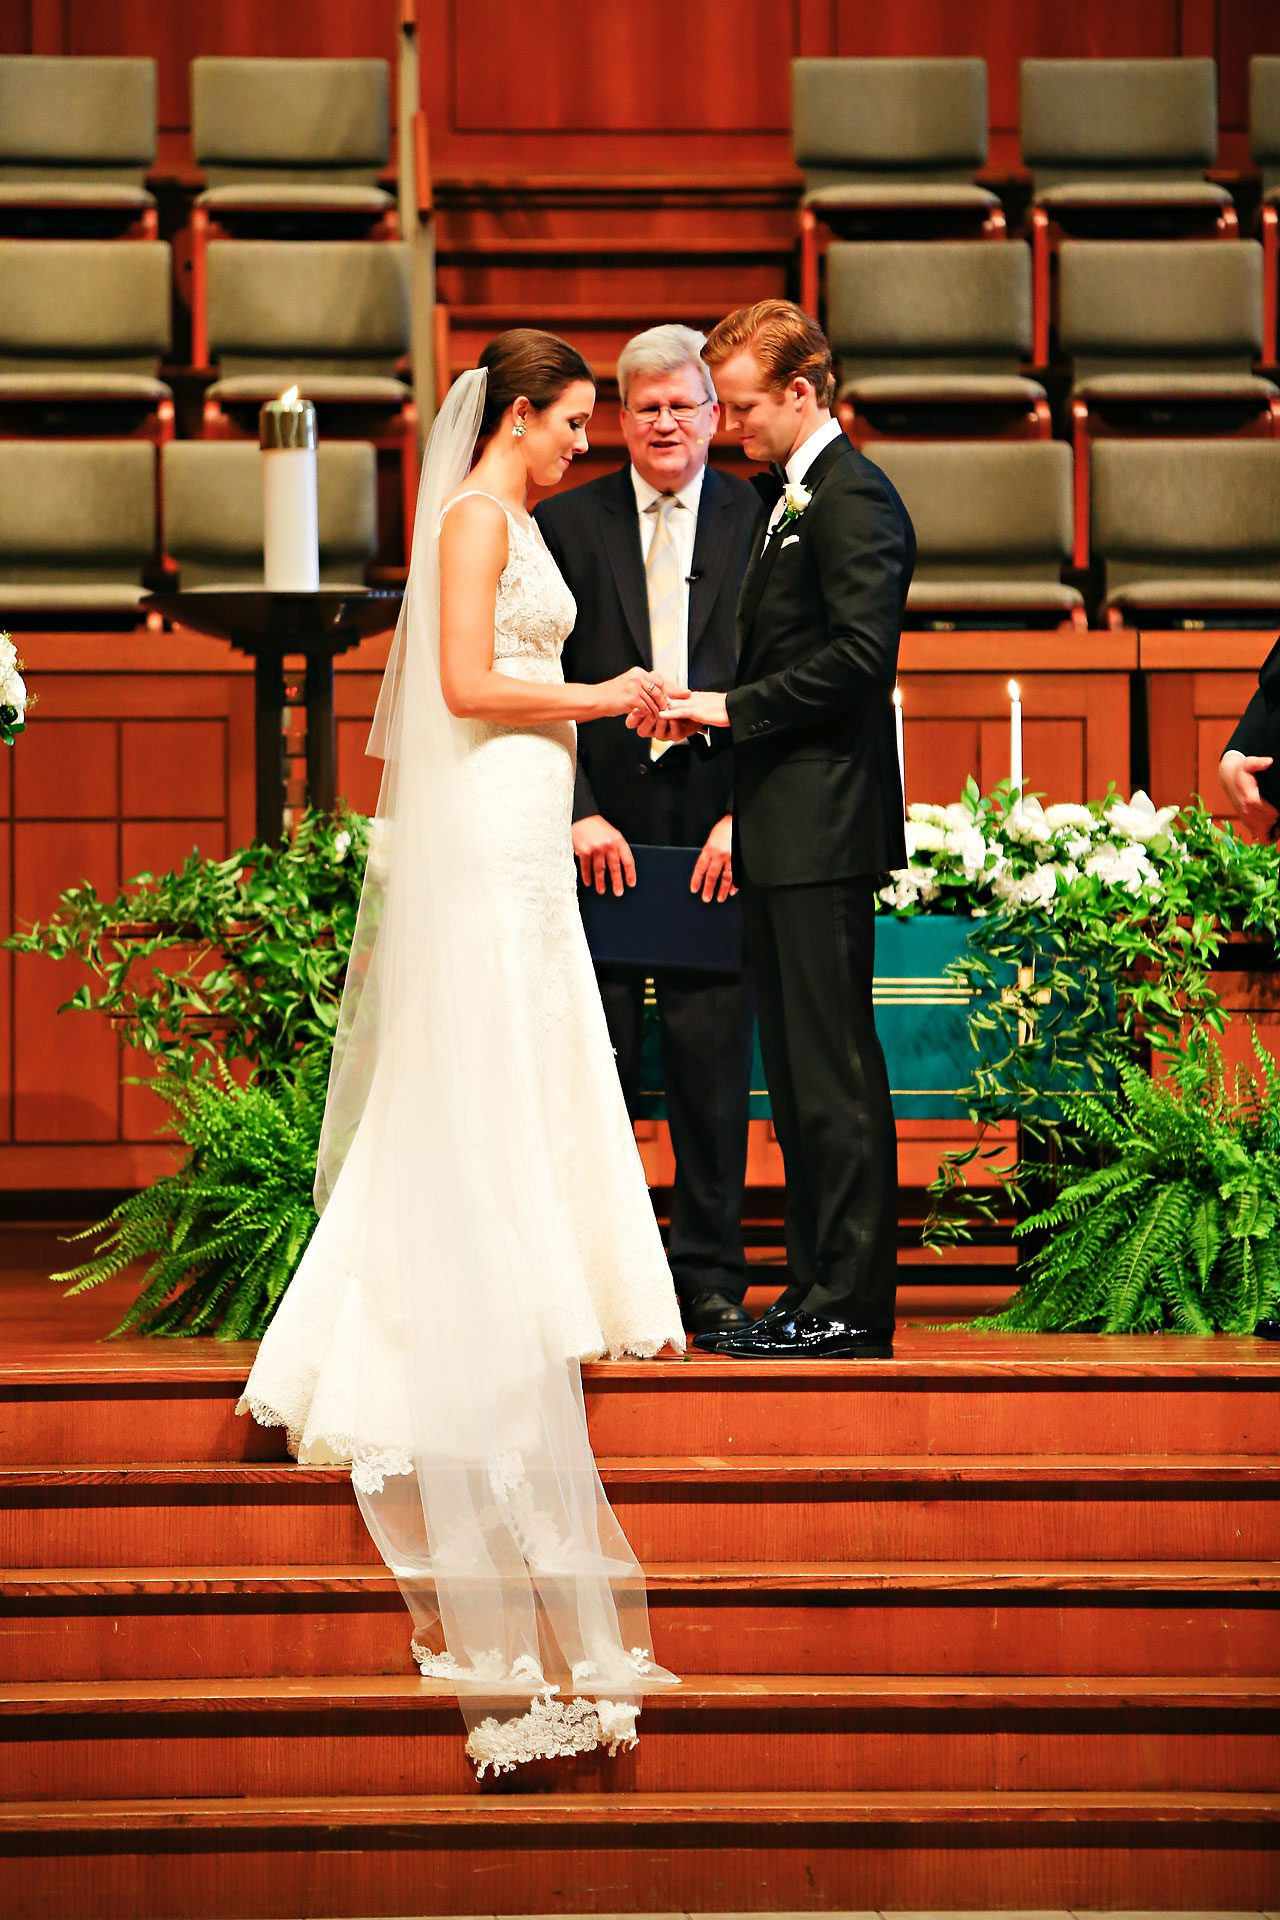 199 katherine austin scottish rite indianapolis wedding